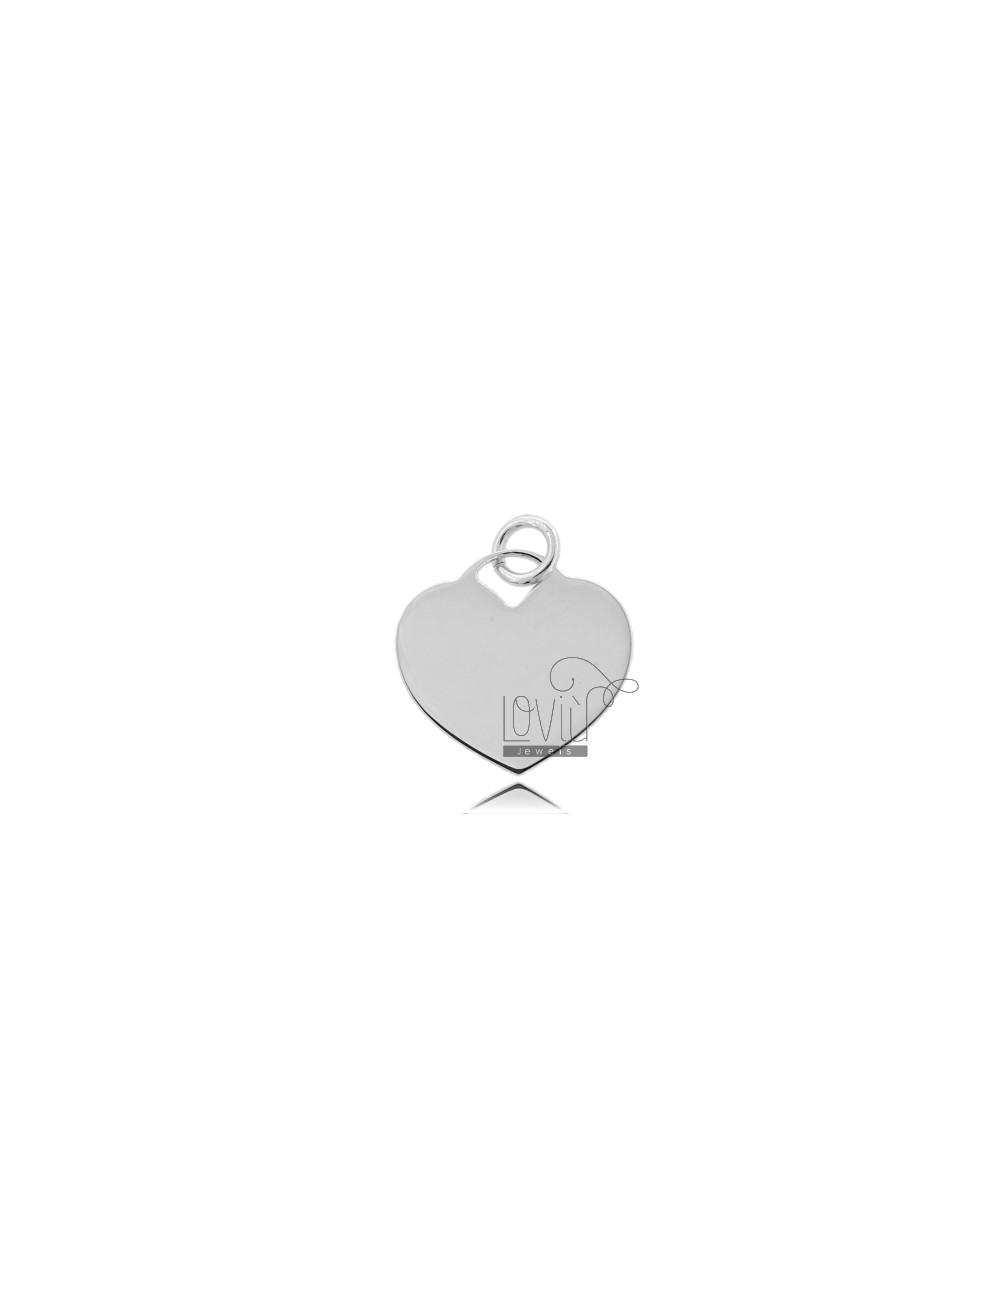 HEART PENDANT 15 MM THICKNESS 0.8 MM IN SILVER 925 RHODIUM TITLE